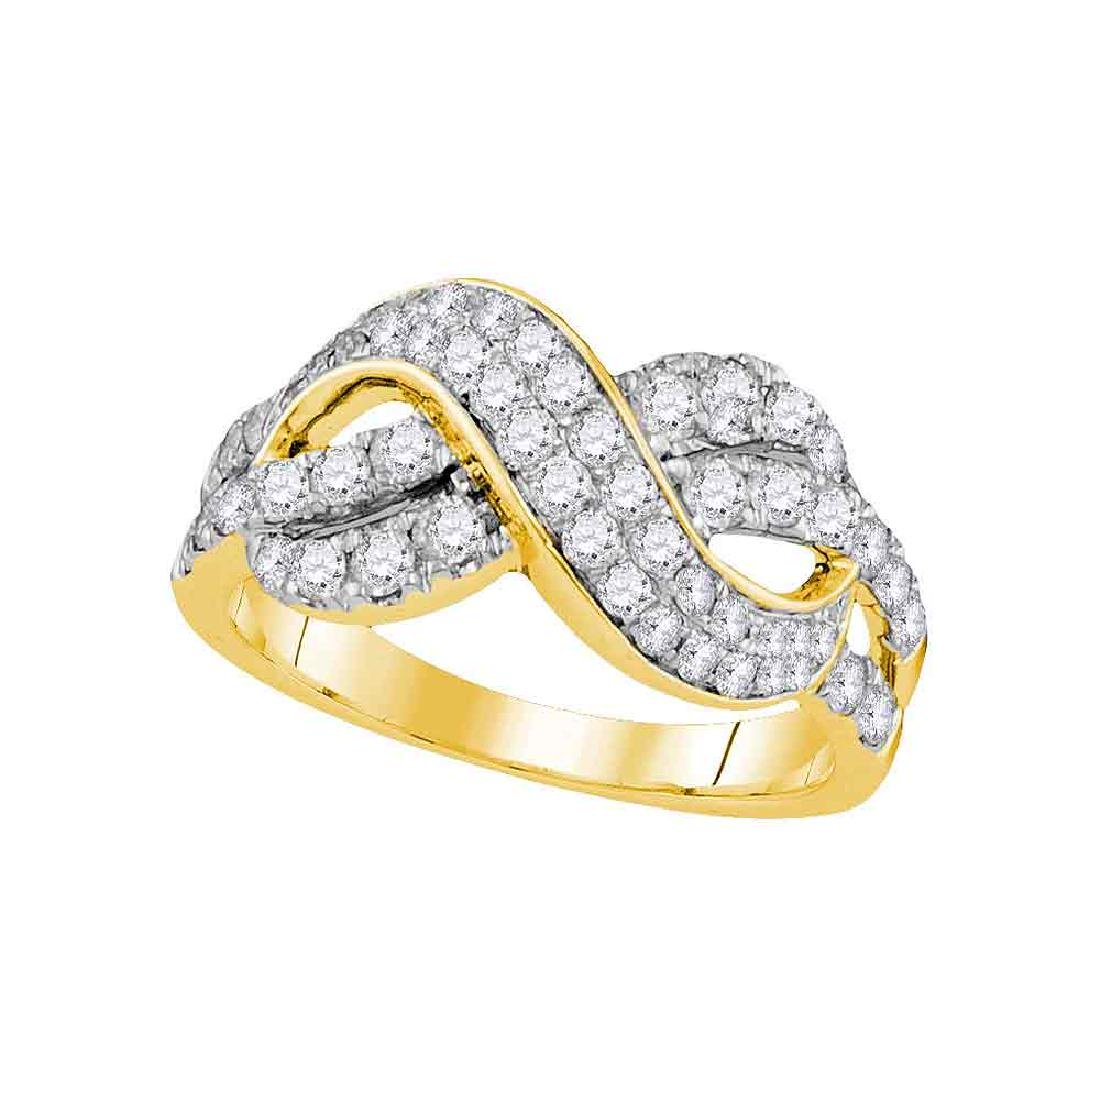 1 CTW Diamond Infinity Crossover Ring 14KT Yellow Gold